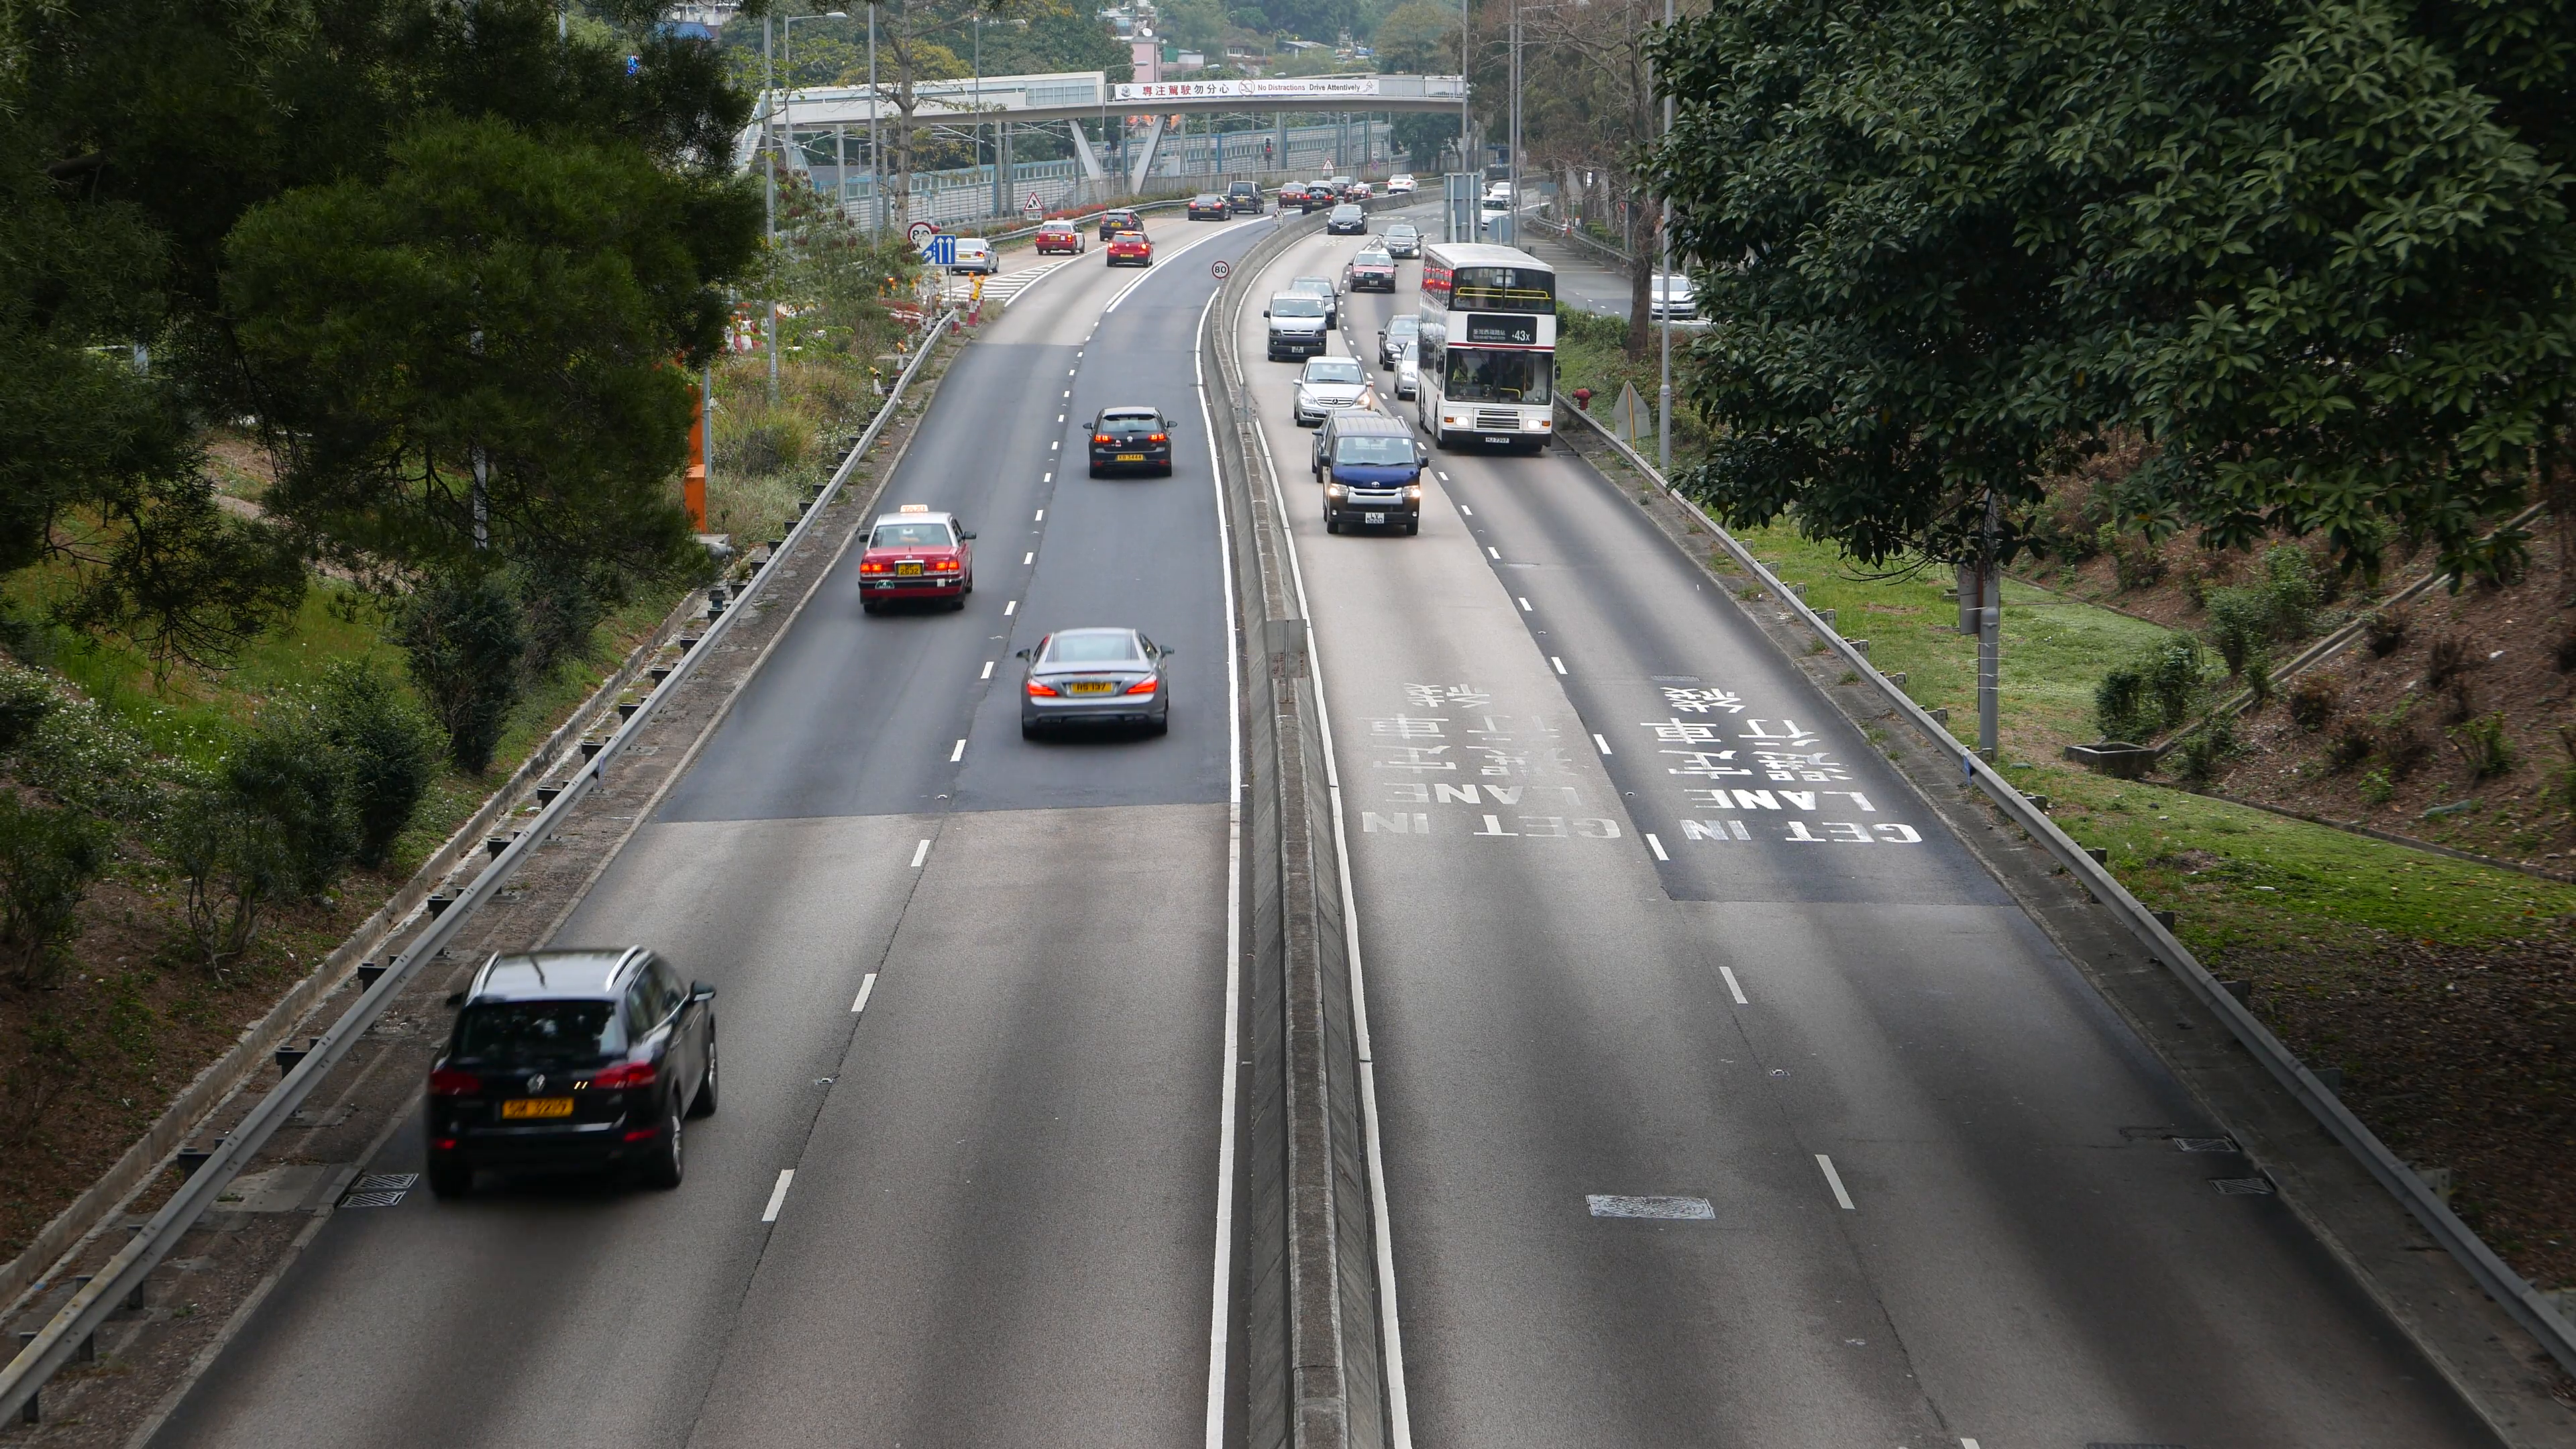 Left-hand drive road and traffic, car overtake bus, change lane ...